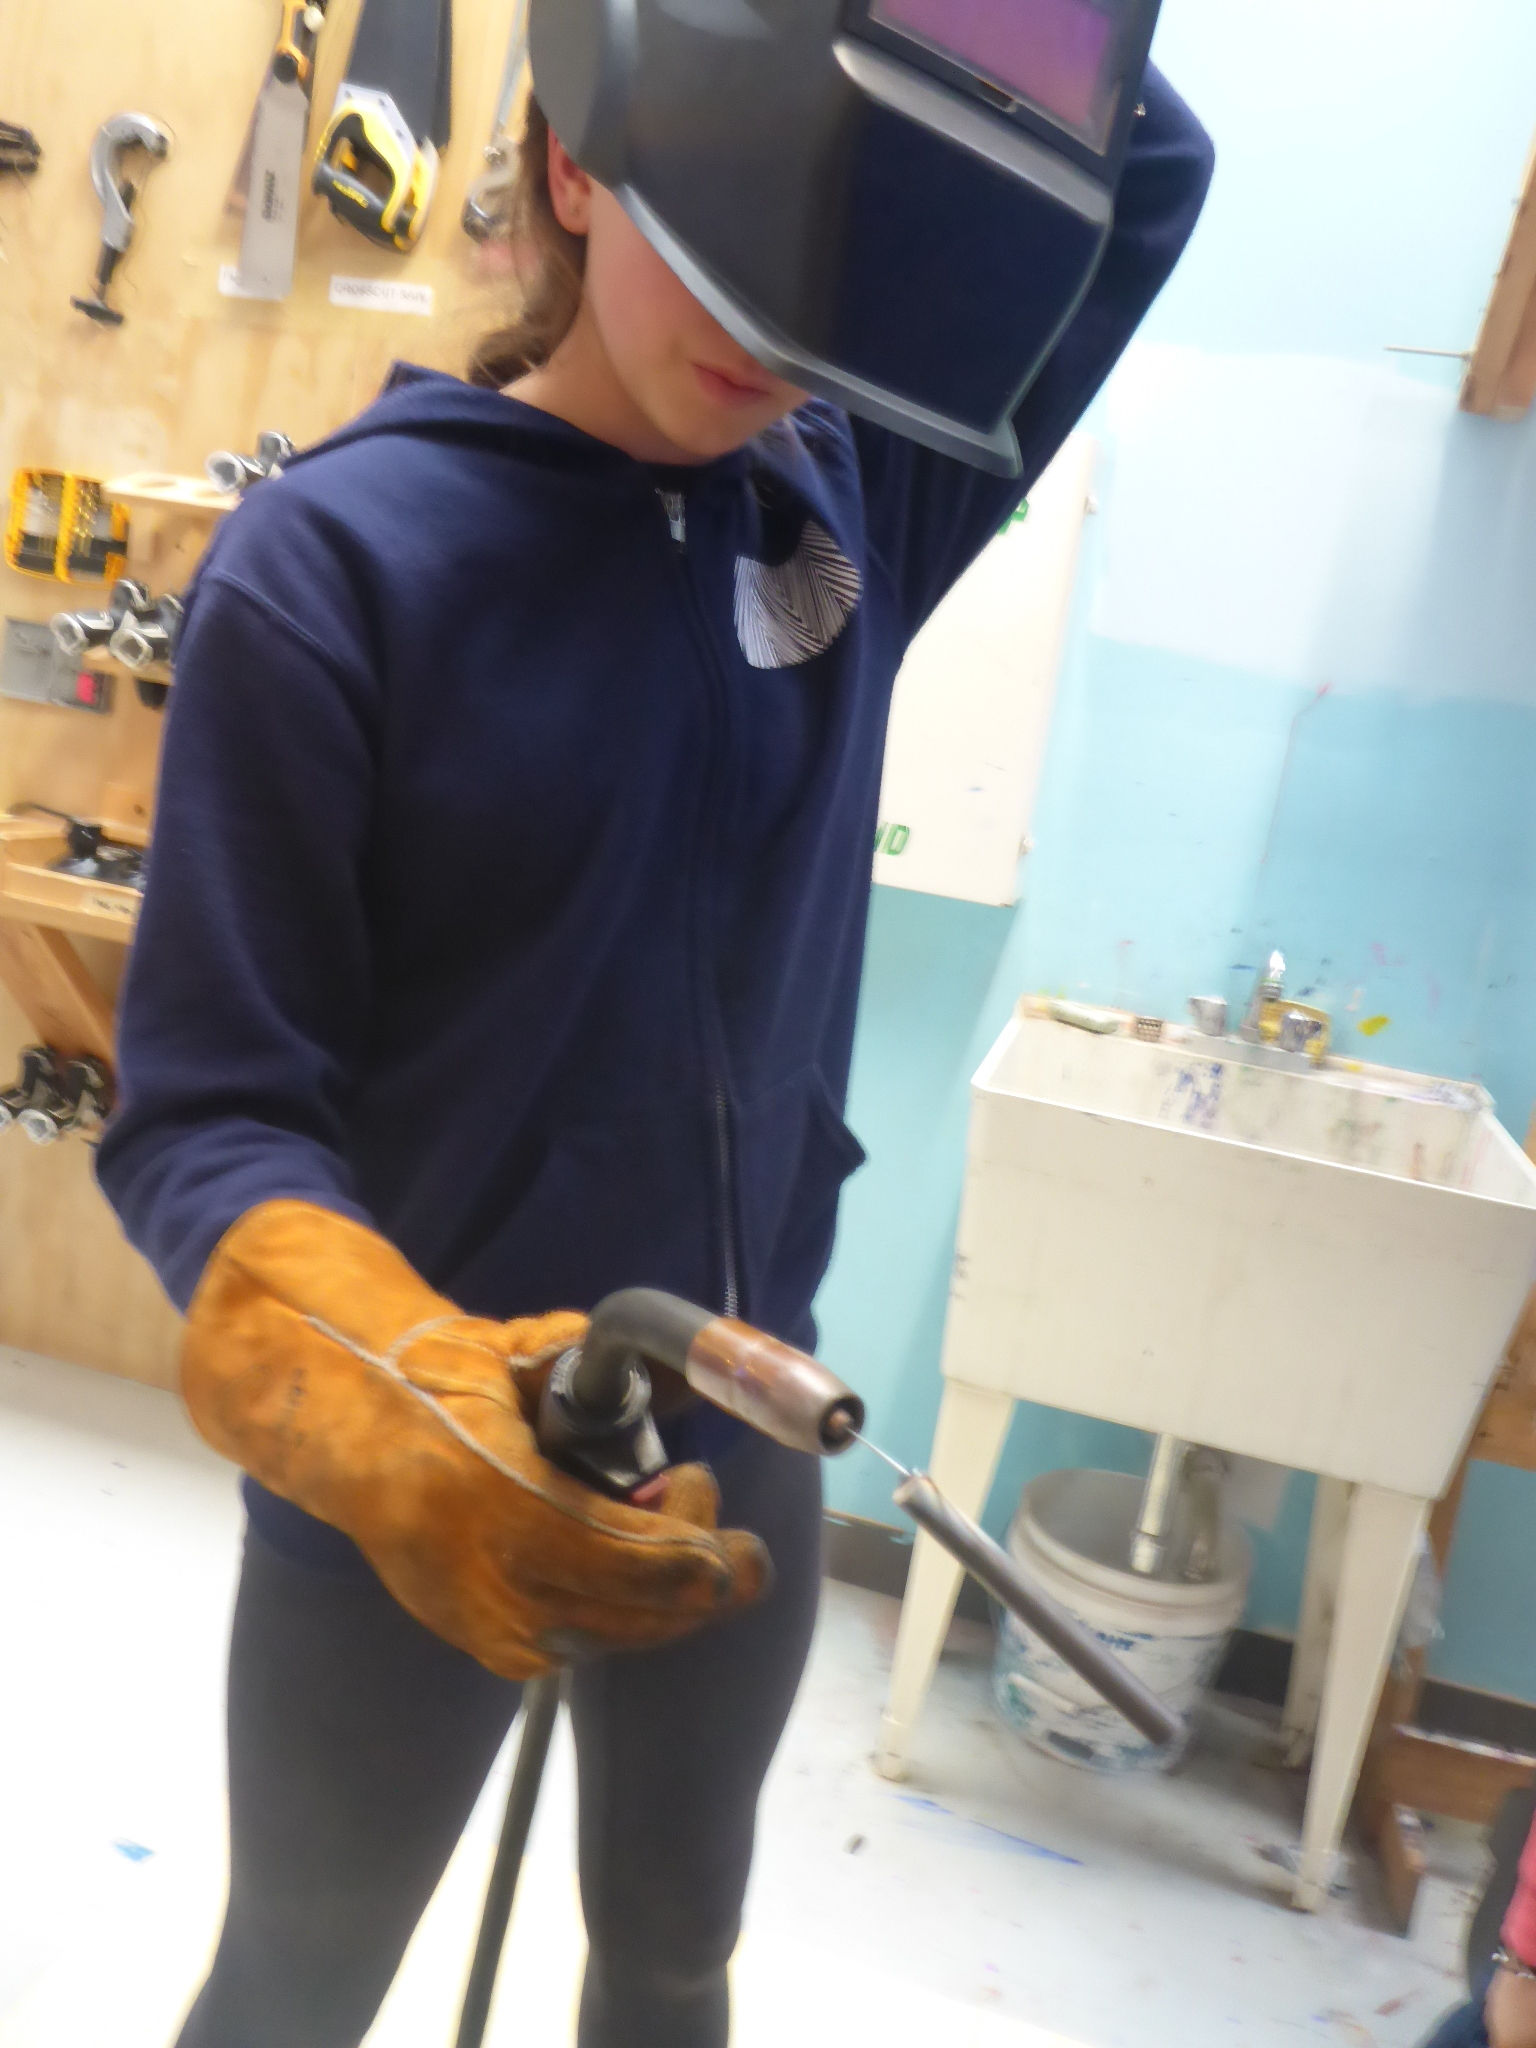 We welded the welder to our projects!